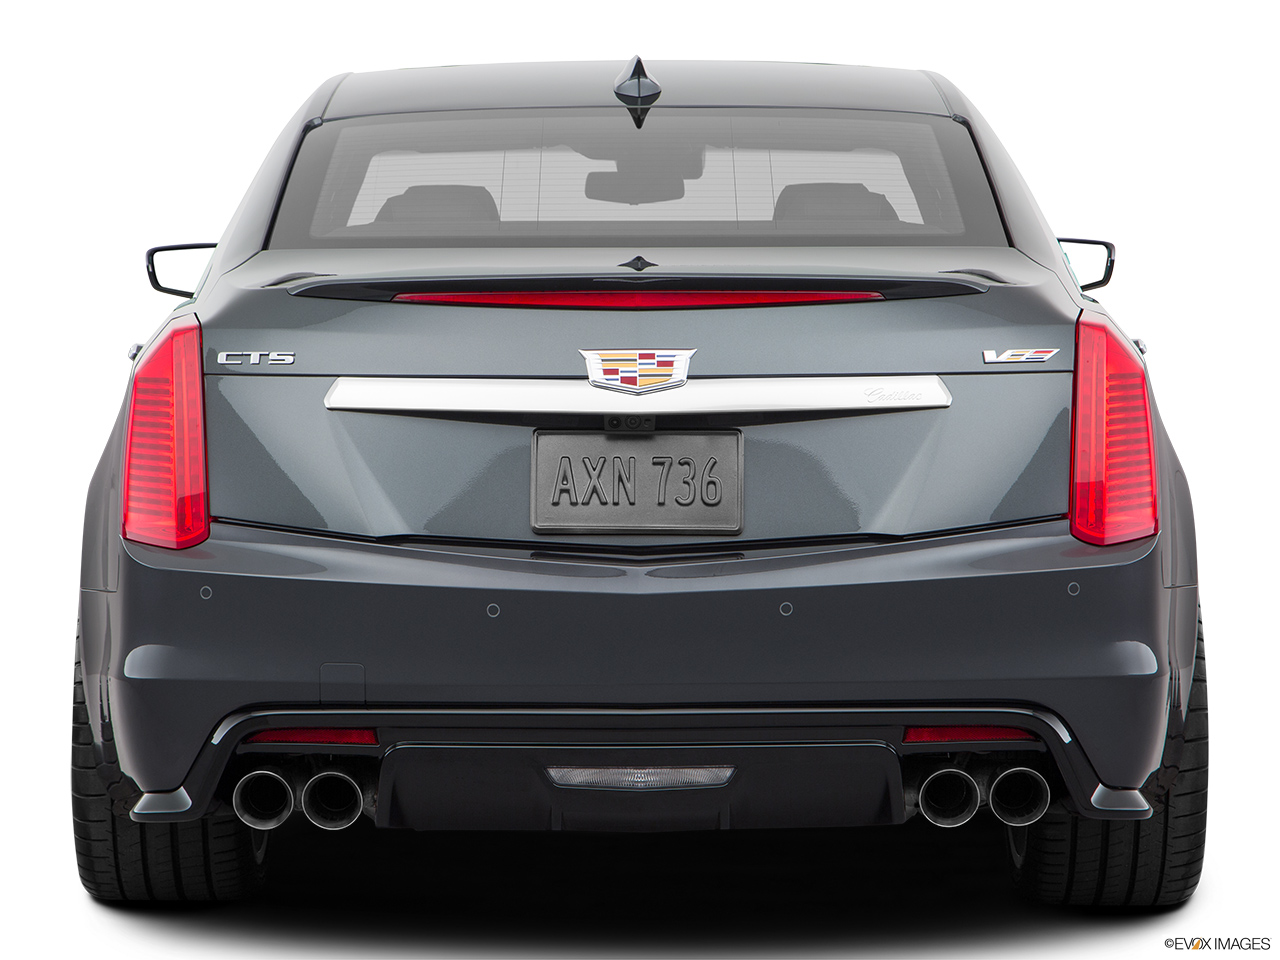 cadillac cts 2017 6 2l cts v without carbon fiber recaro in saudi arabia new car prices. Black Bedroom Furniture Sets. Home Design Ideas